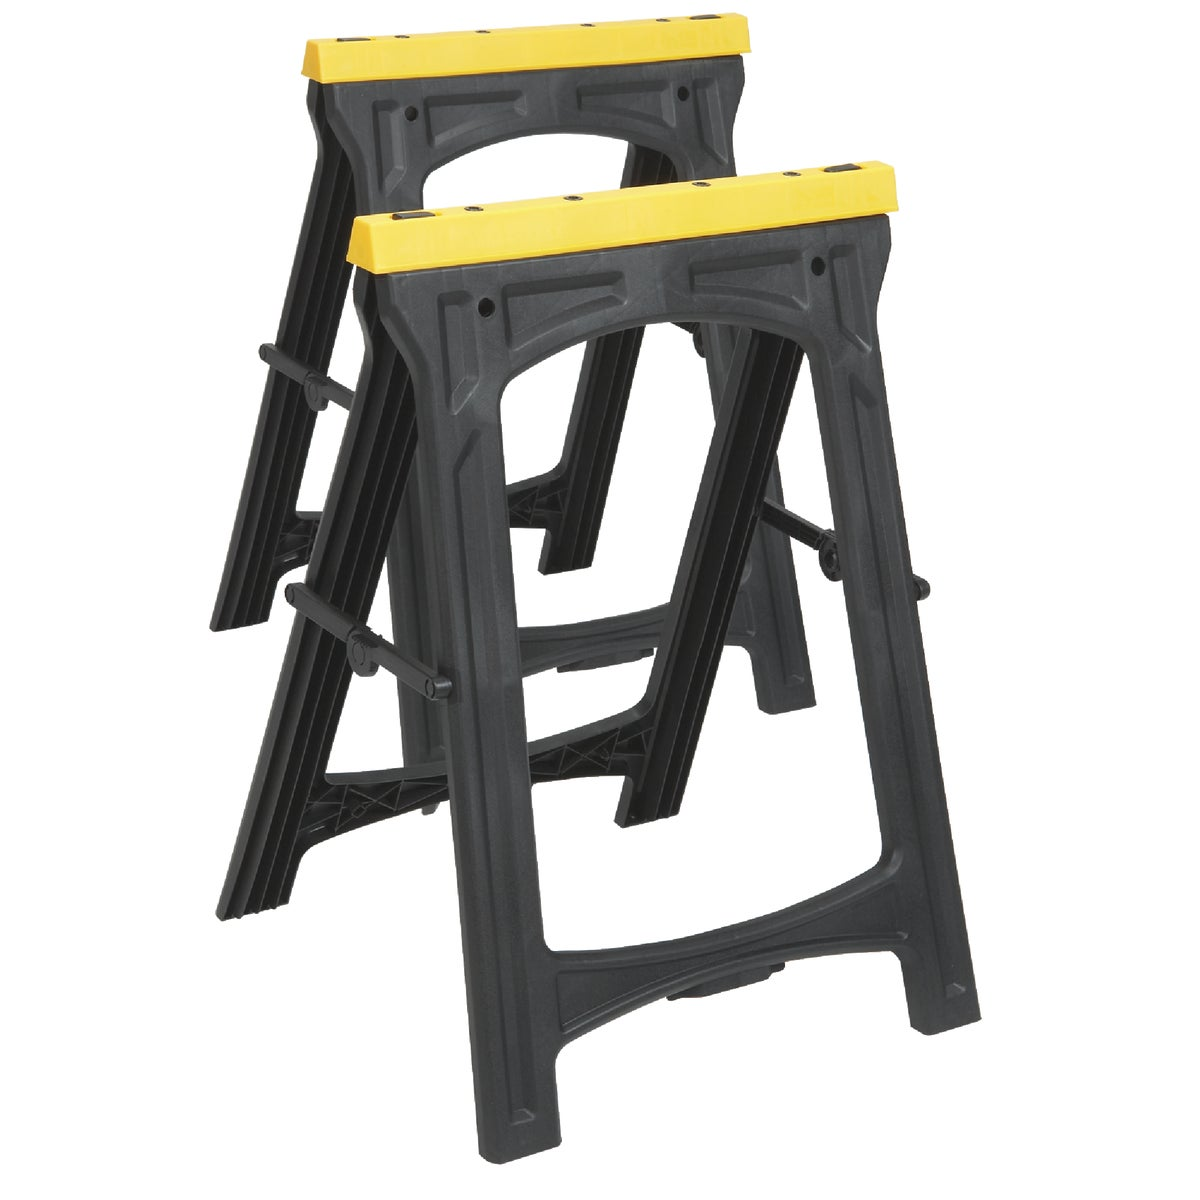 2PK SAWHORSE SET - 355380 by Do it Best